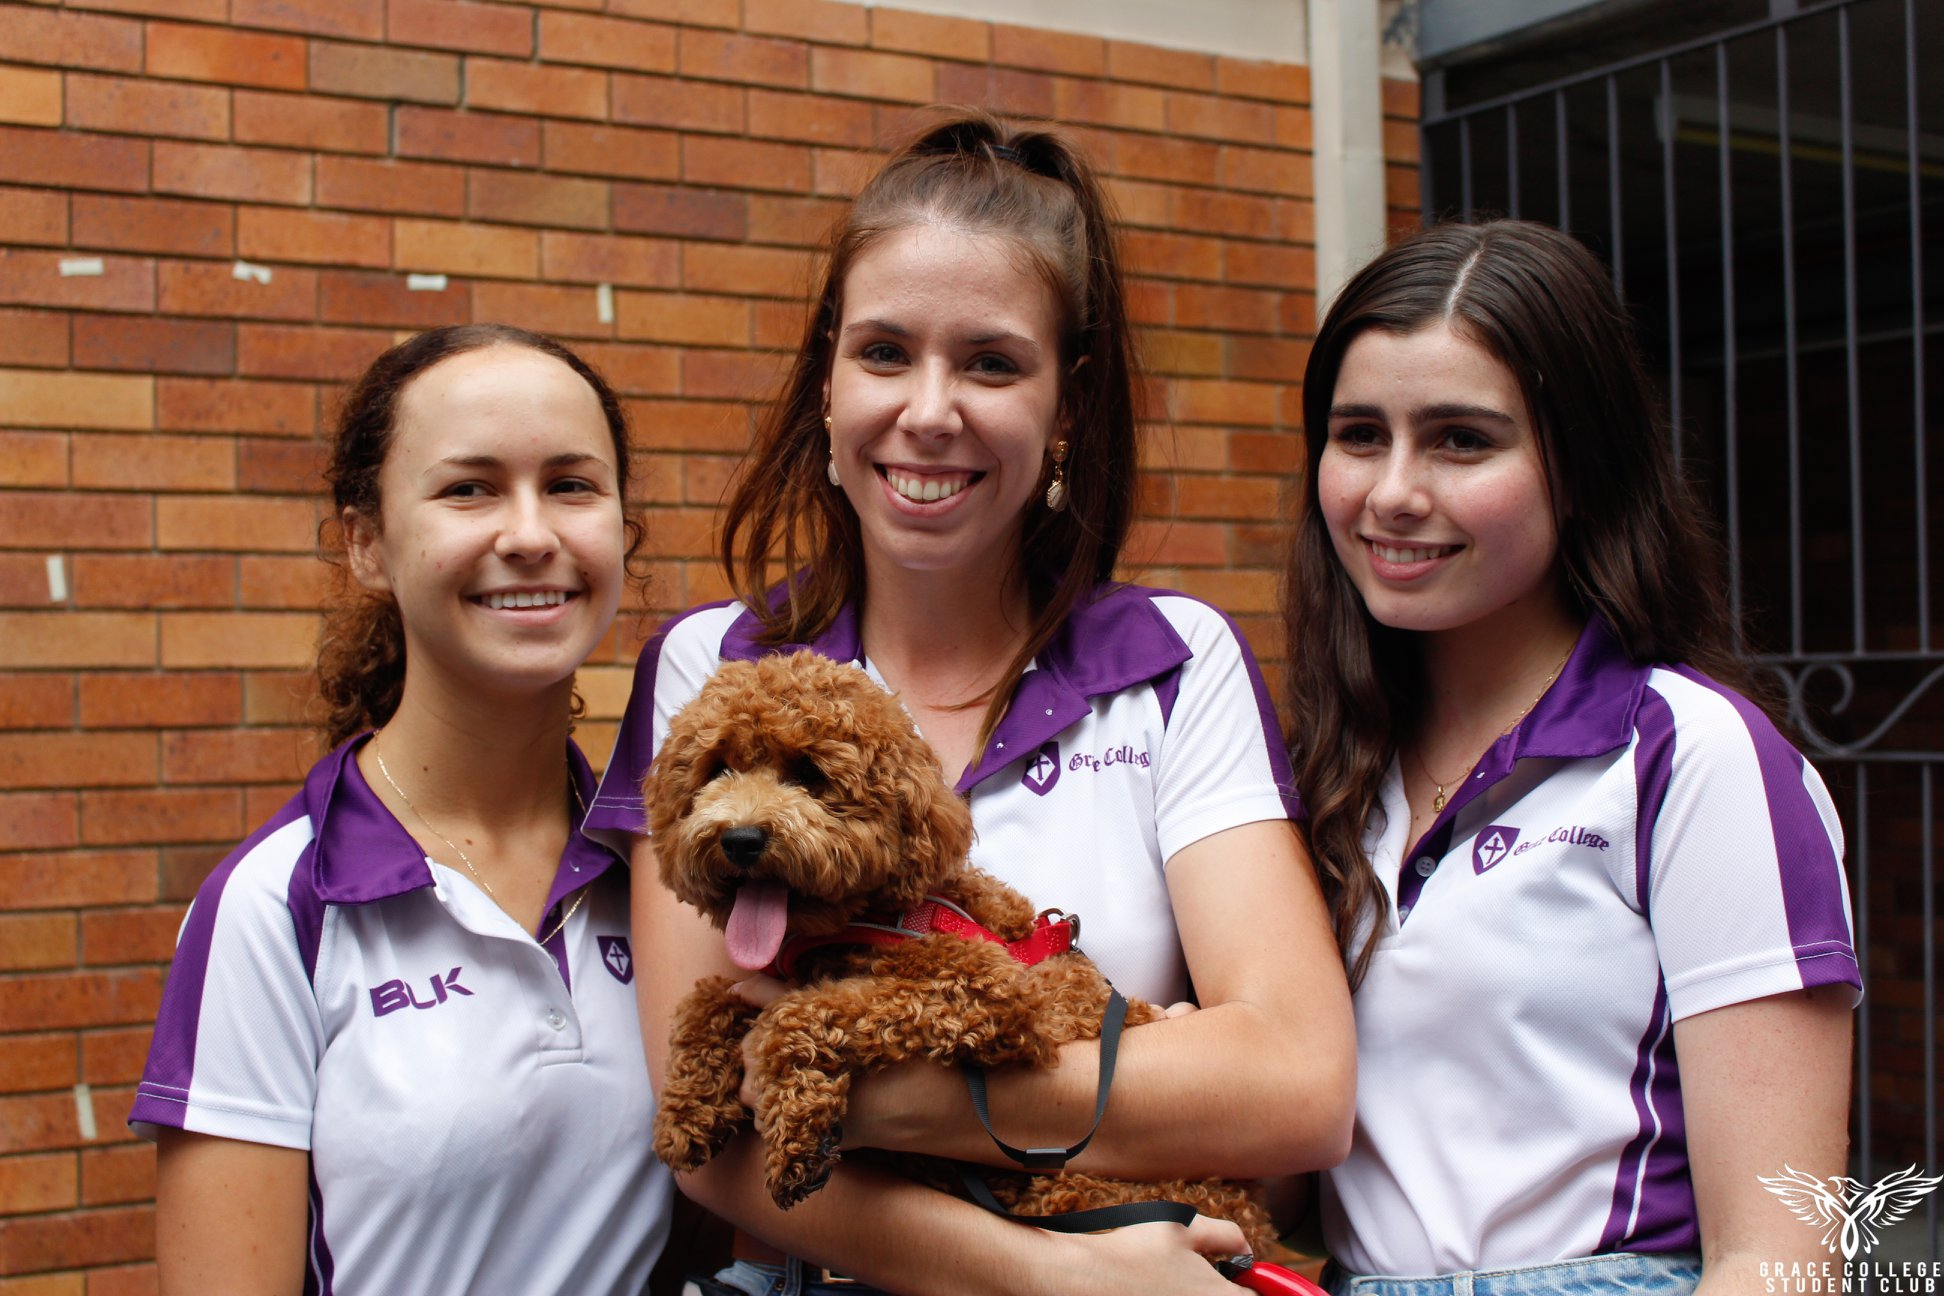 Student leaders with fluffy dog